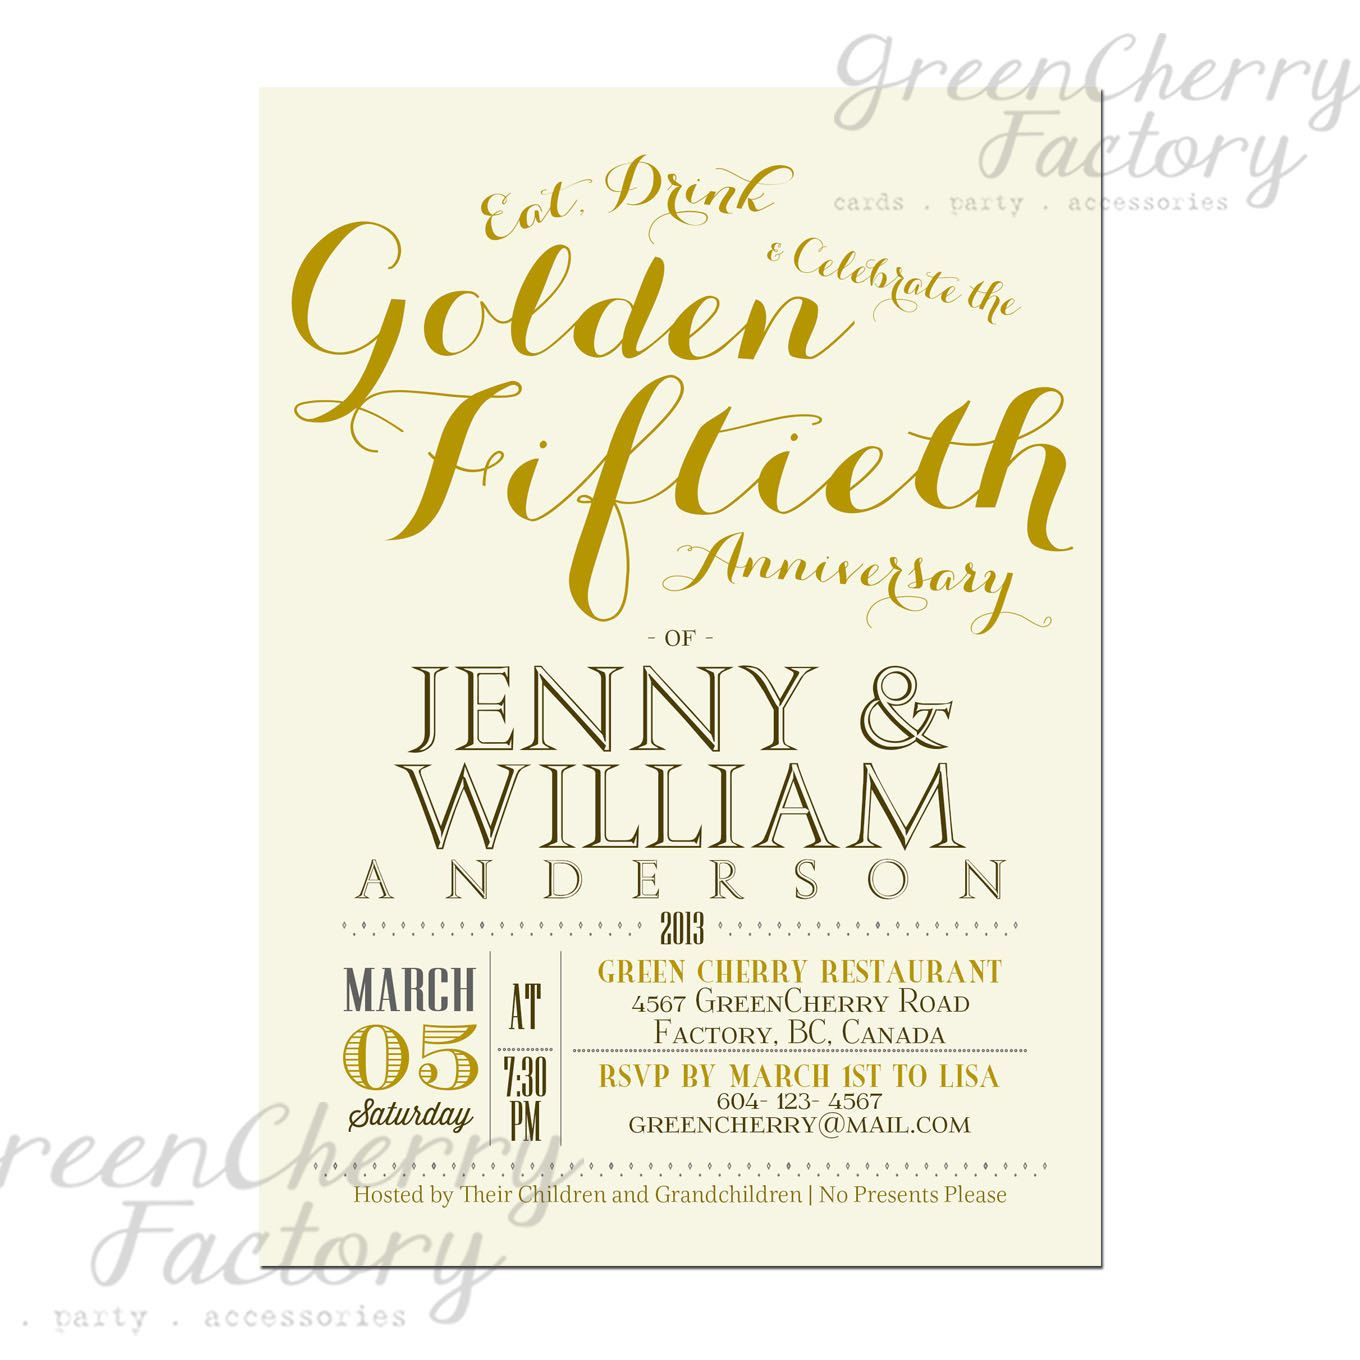 Golden 50th Wedding Anniversary Invitation Idea - font idea ...